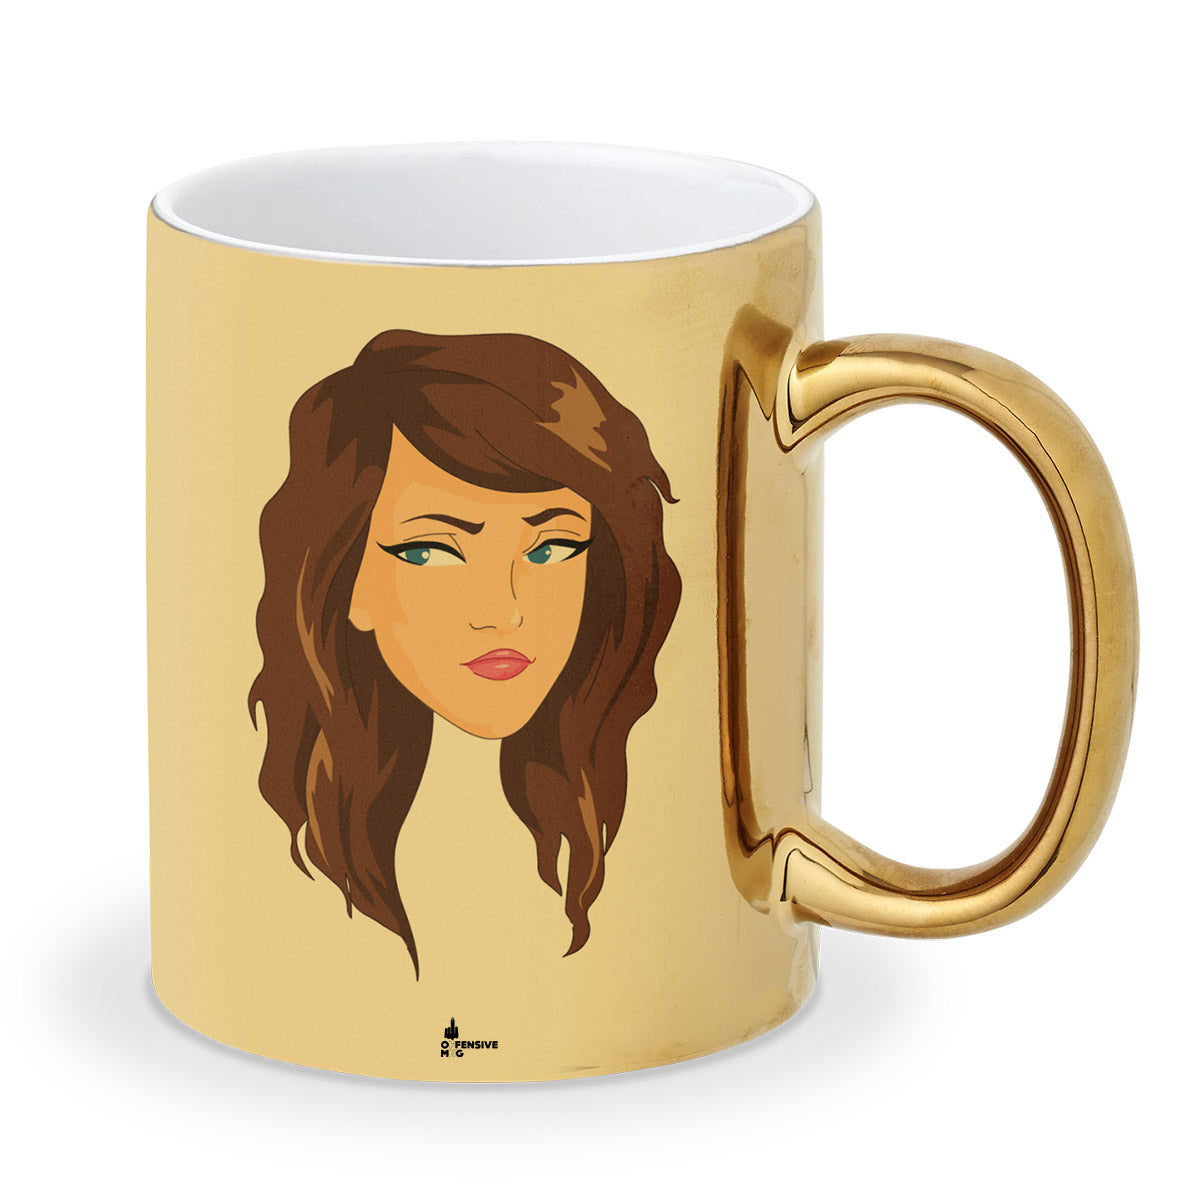 Becky Metal Plated Mug - Offensive Mug